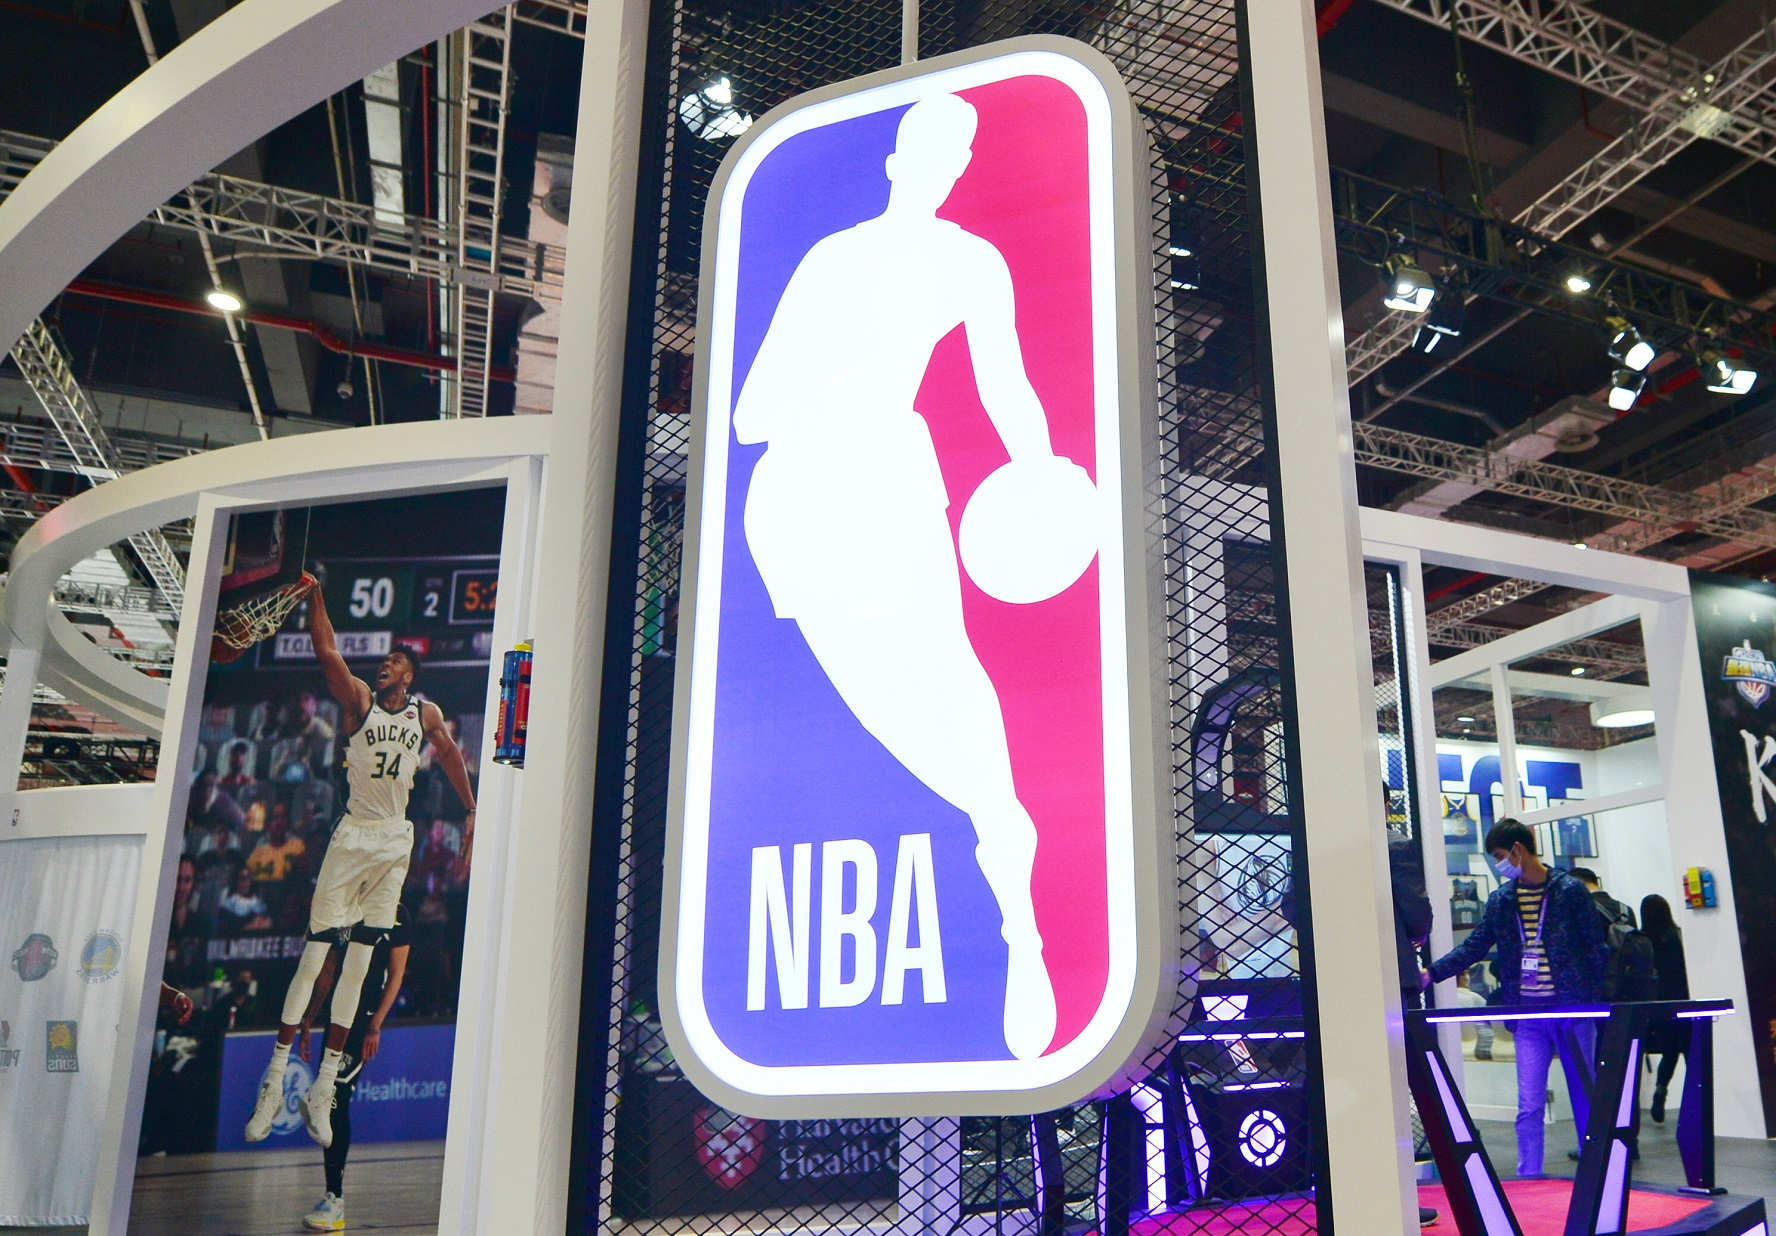 The 2015 NBA Draft Highlights 1 of the Worst Aspects of Sports